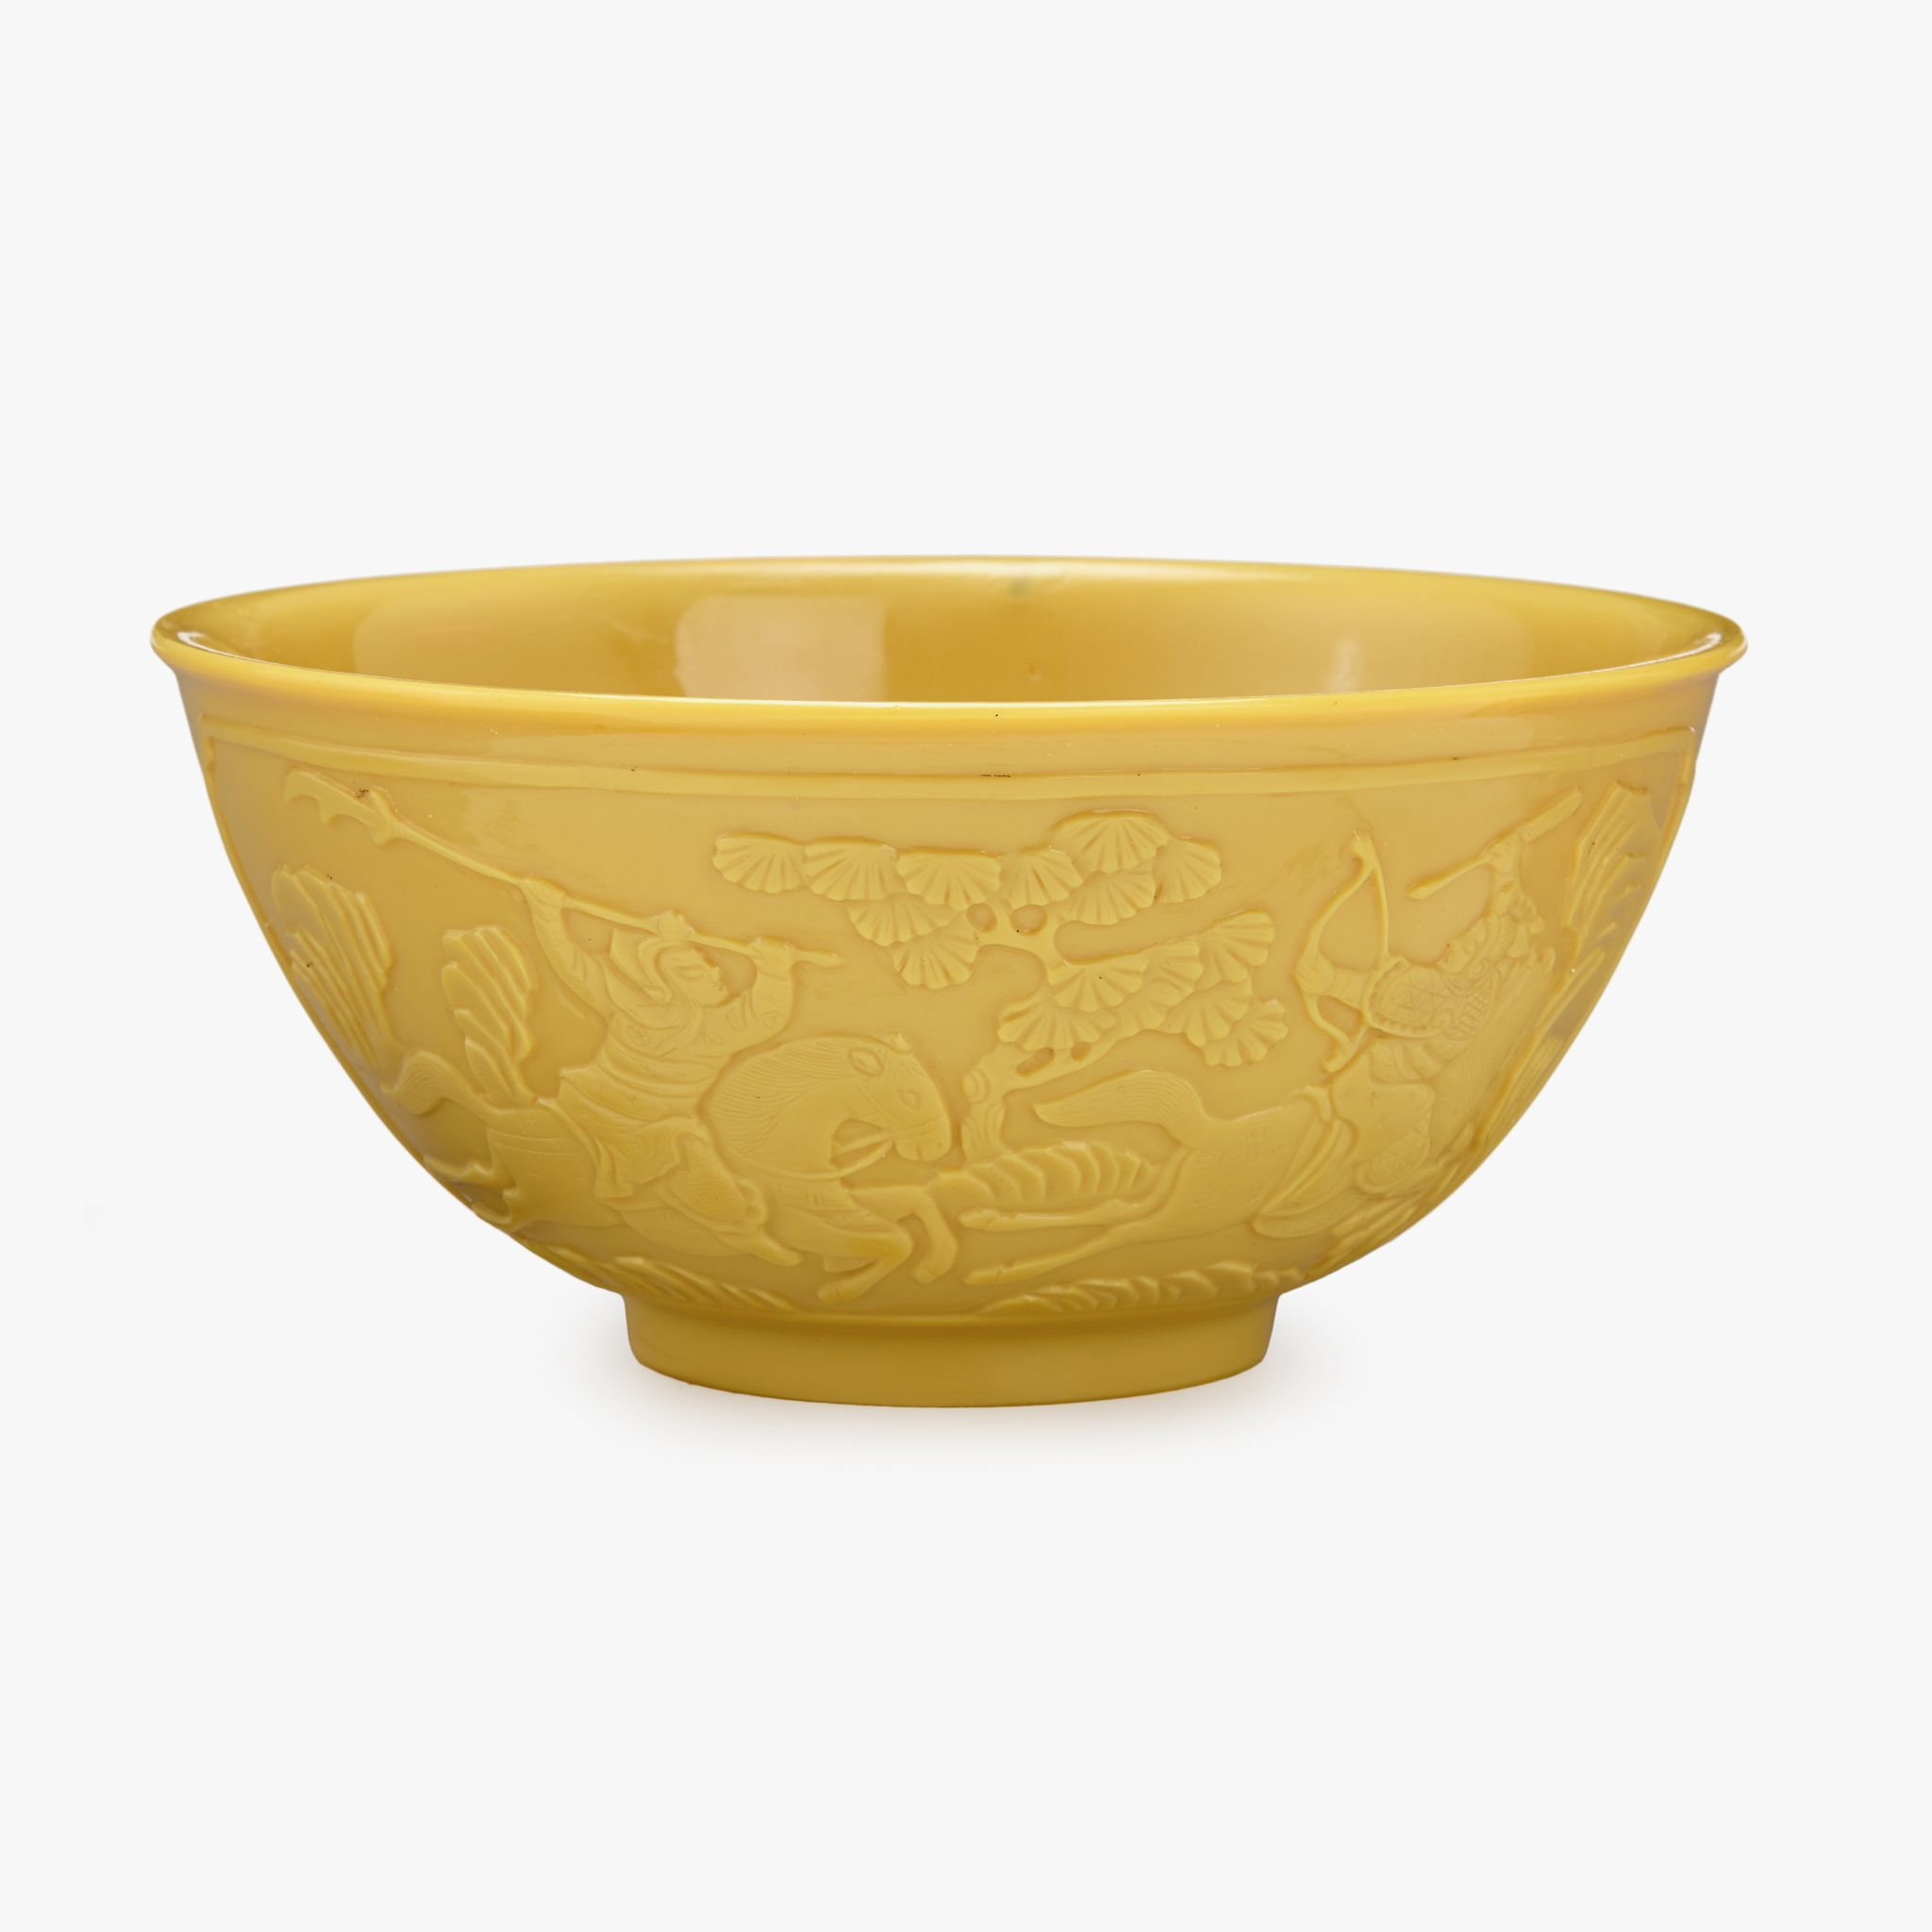 A Chinese yellow glass bowl, carved with warrior figures, Qianlong four-character wheel-cut mark within a square and of the period